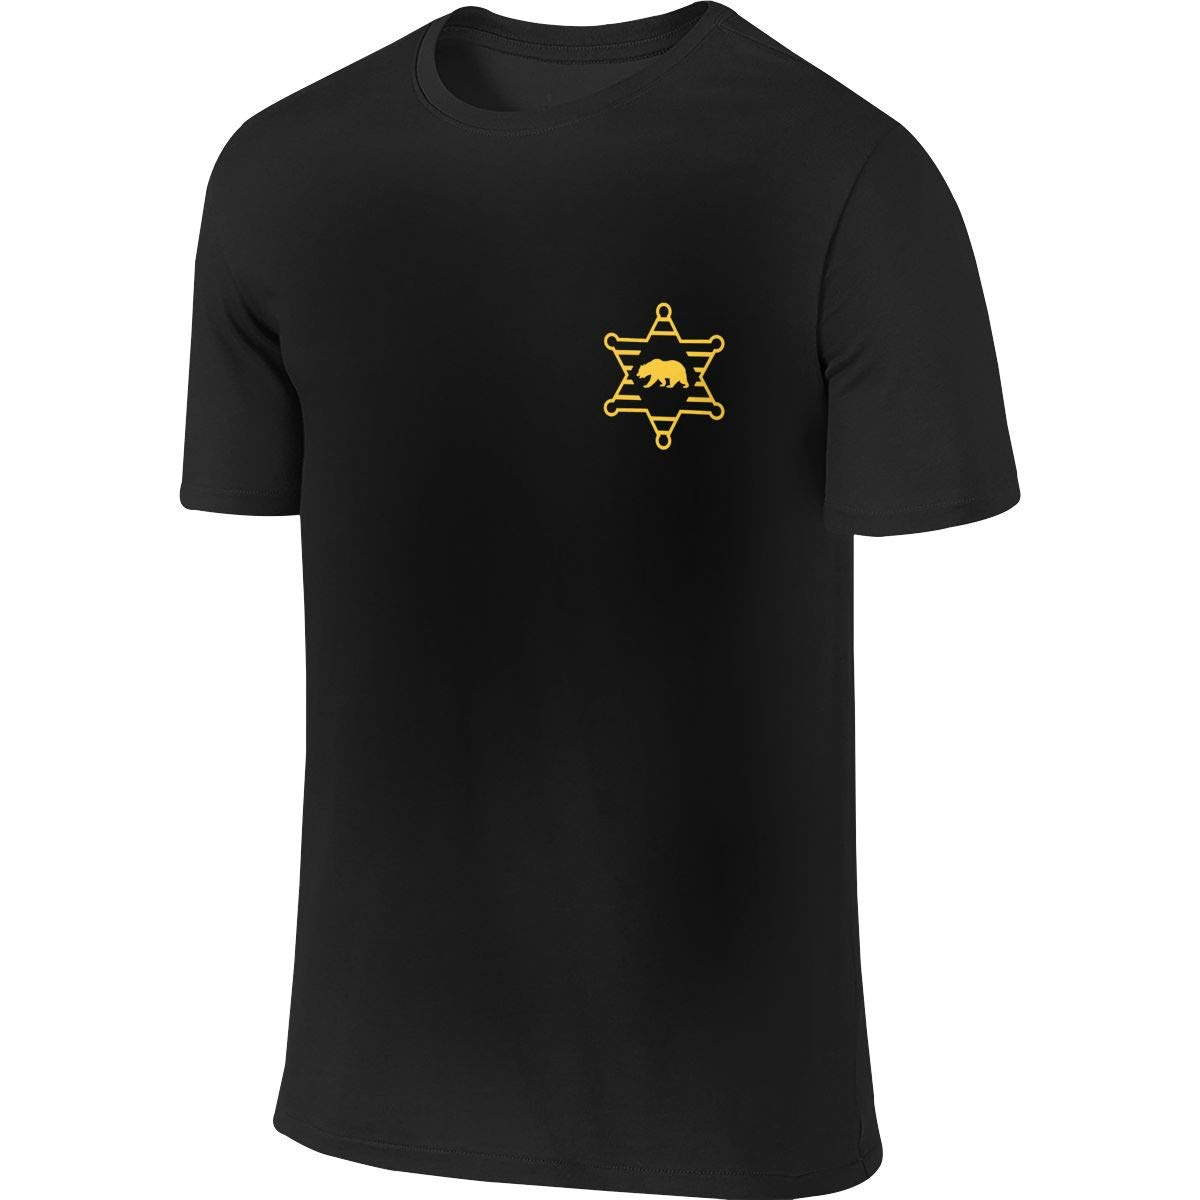 Los Angeles County Sheriff Mens Short Sleeve T-Shirt Graphic Tshirts Tee Black